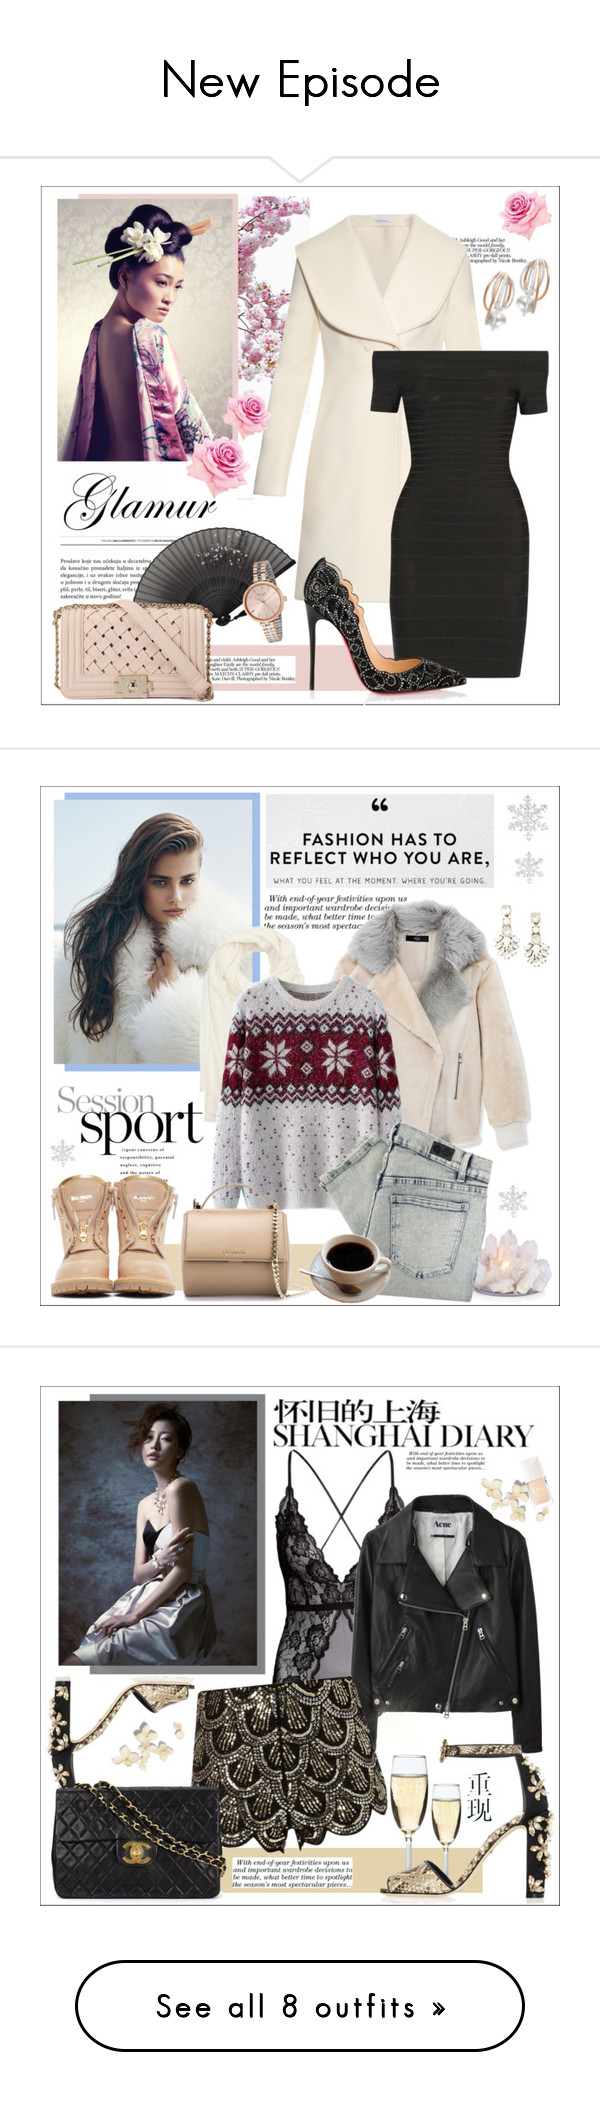 """""""New Episode"""" by kitty-kat9 ❤ liked on Polyvore featuring мода, Mikimoto, Kate Spade, J.W. Anderson, Behance, Hervé Léger, Christian Louboutin, Victoria Beckham, Portolano и TIBI"""